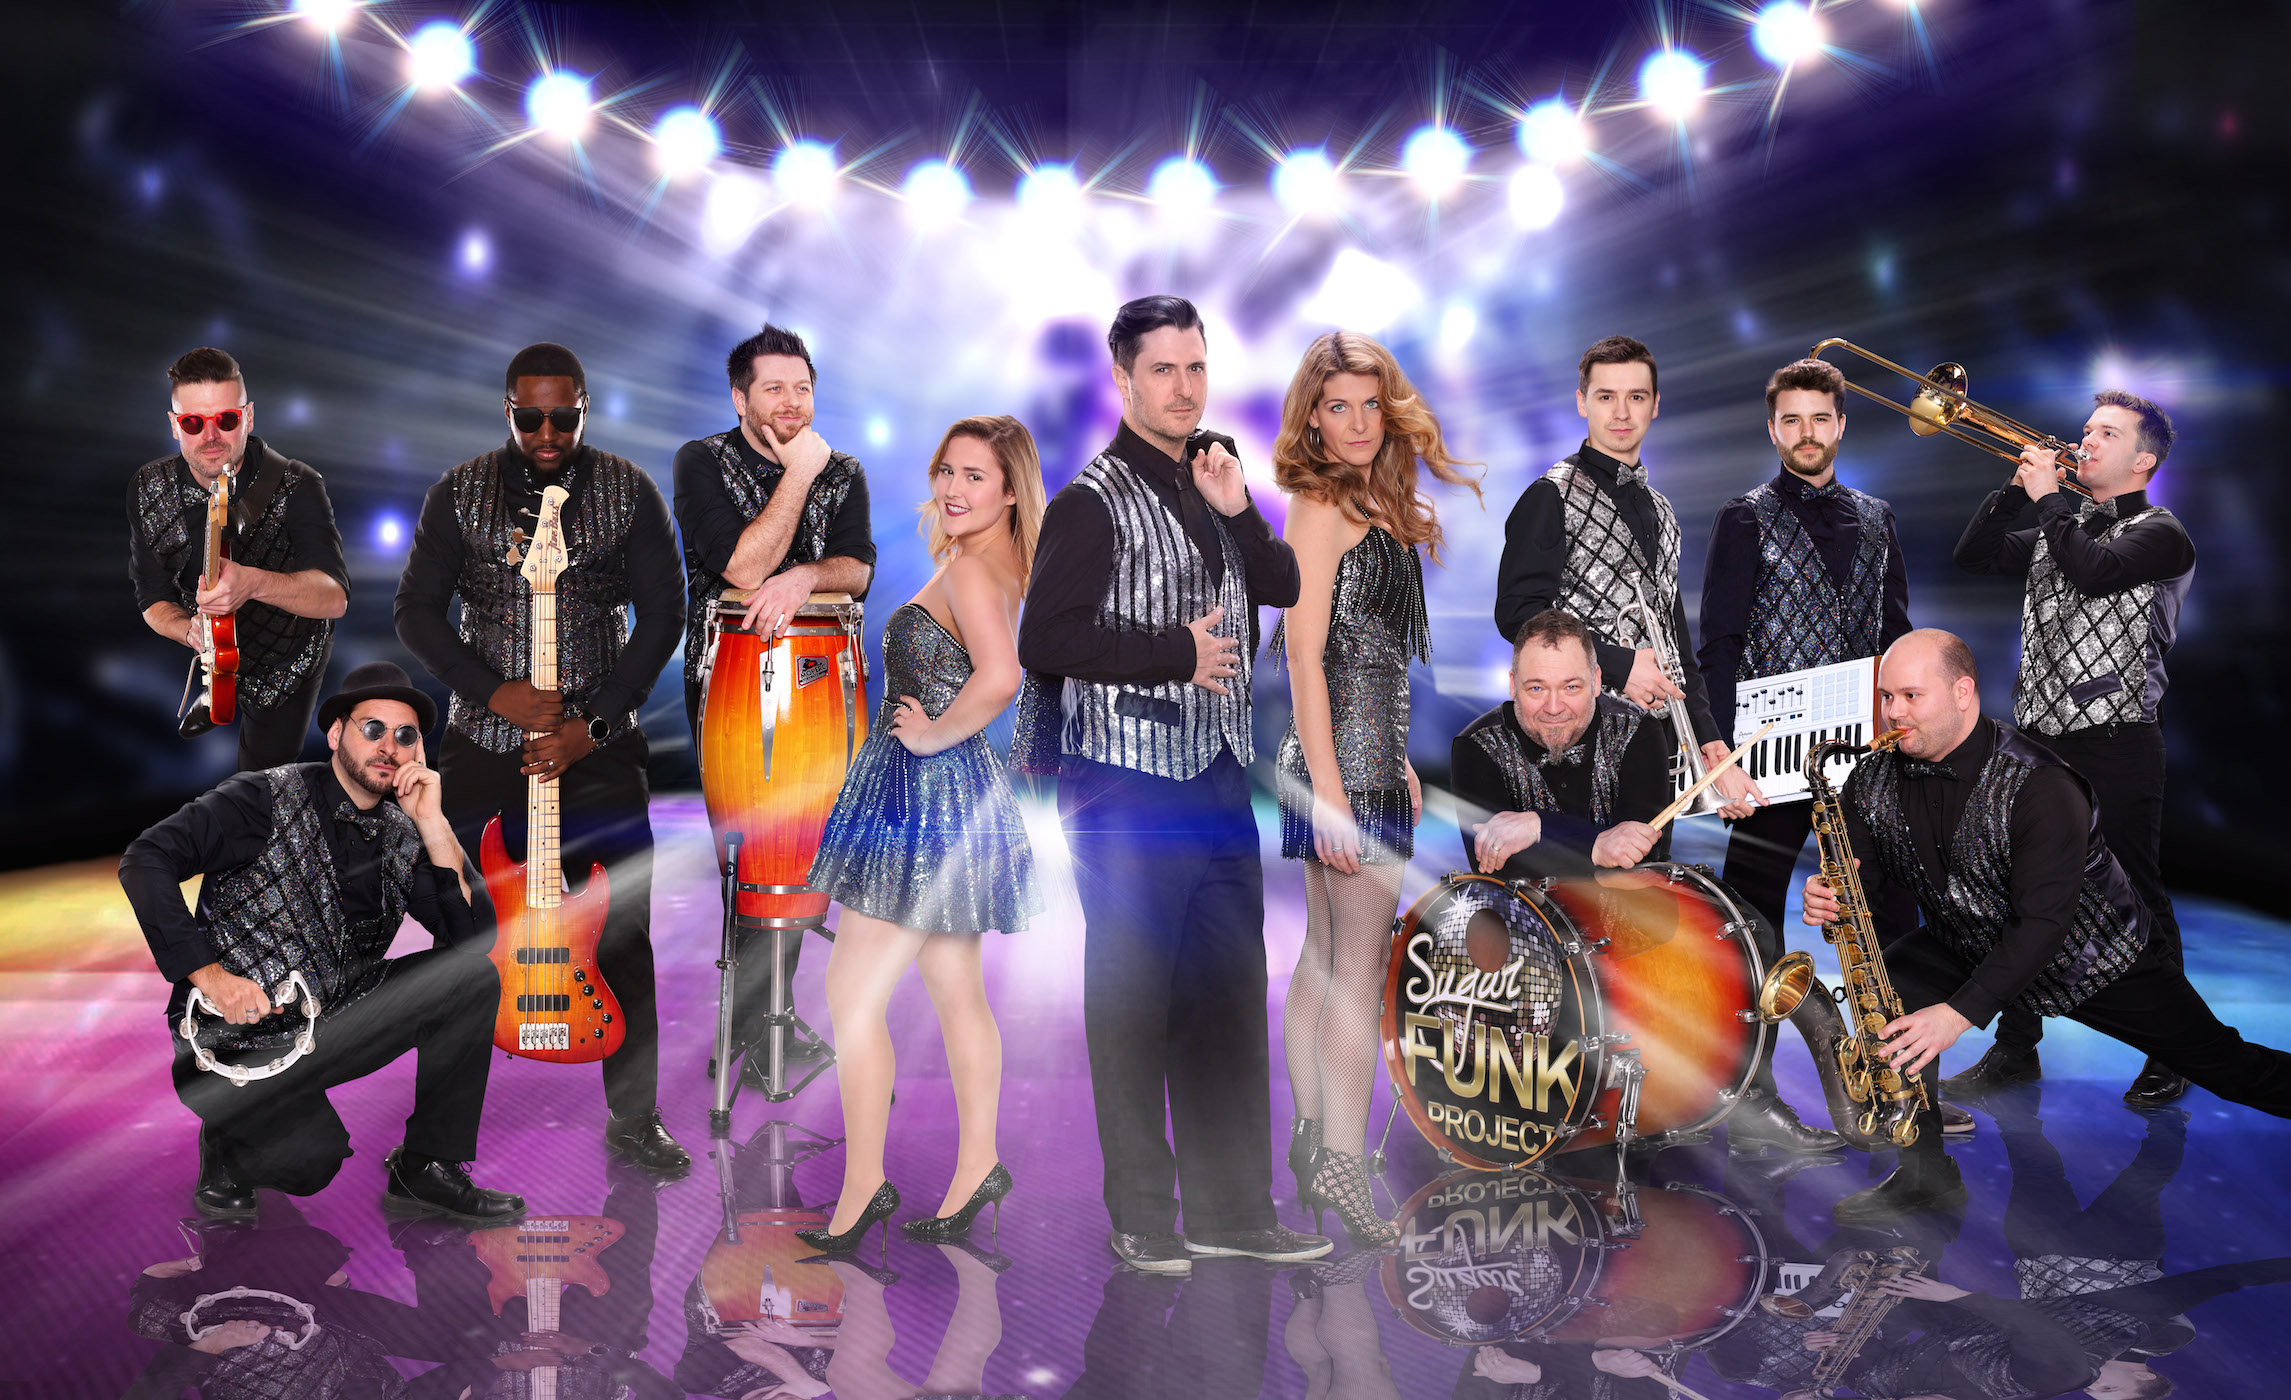 Sugar Funk Project - Showband Top-40 Disco